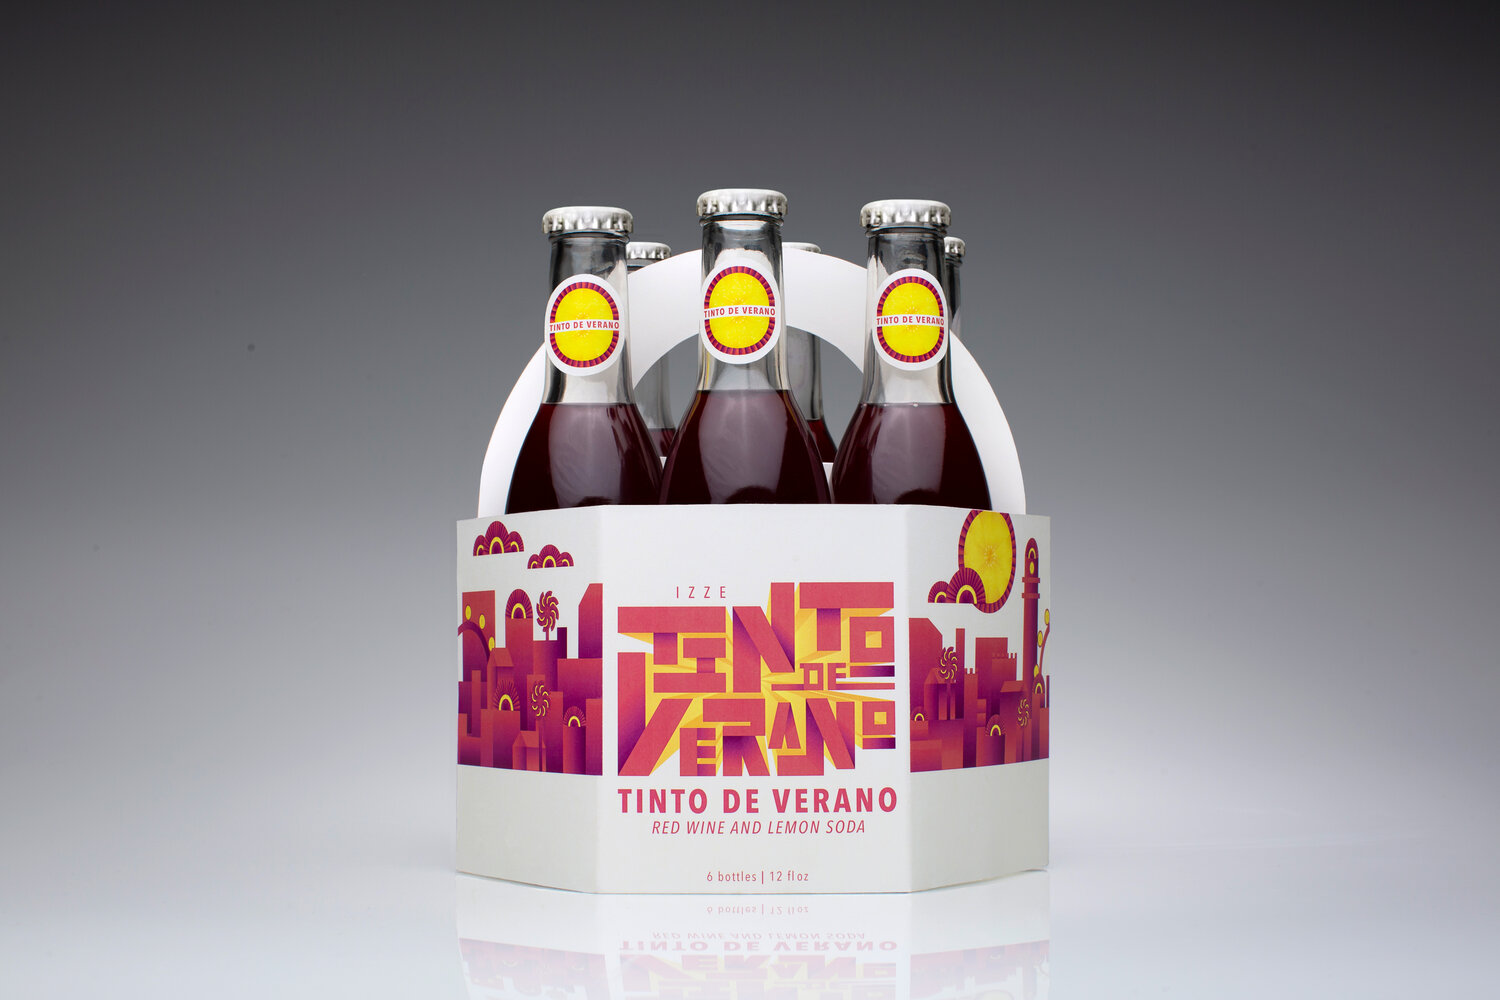 Cal Poly Graphic Design student project / Art 437: Graphic Design III / Tinto de Verano package design